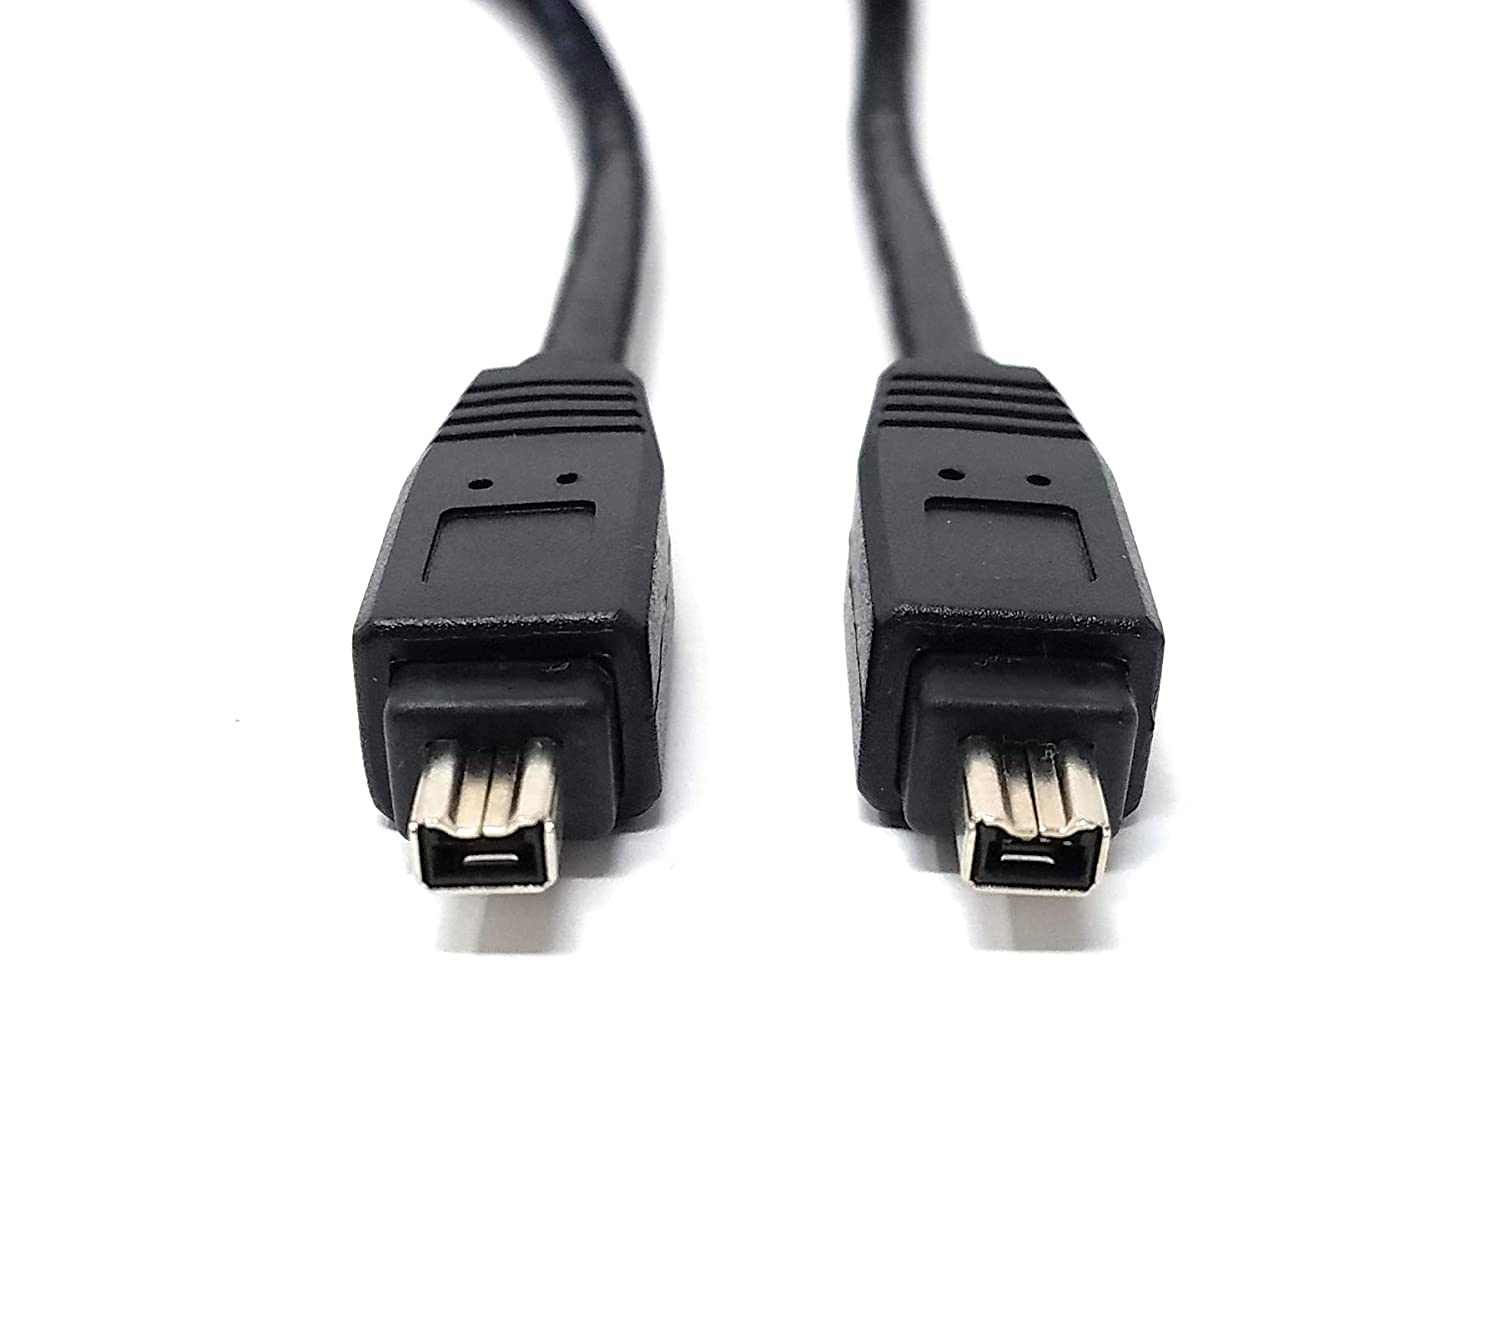 Firewire IEEE 1394 DV Cable 6 A 6 Pines PC o Mac 5 m